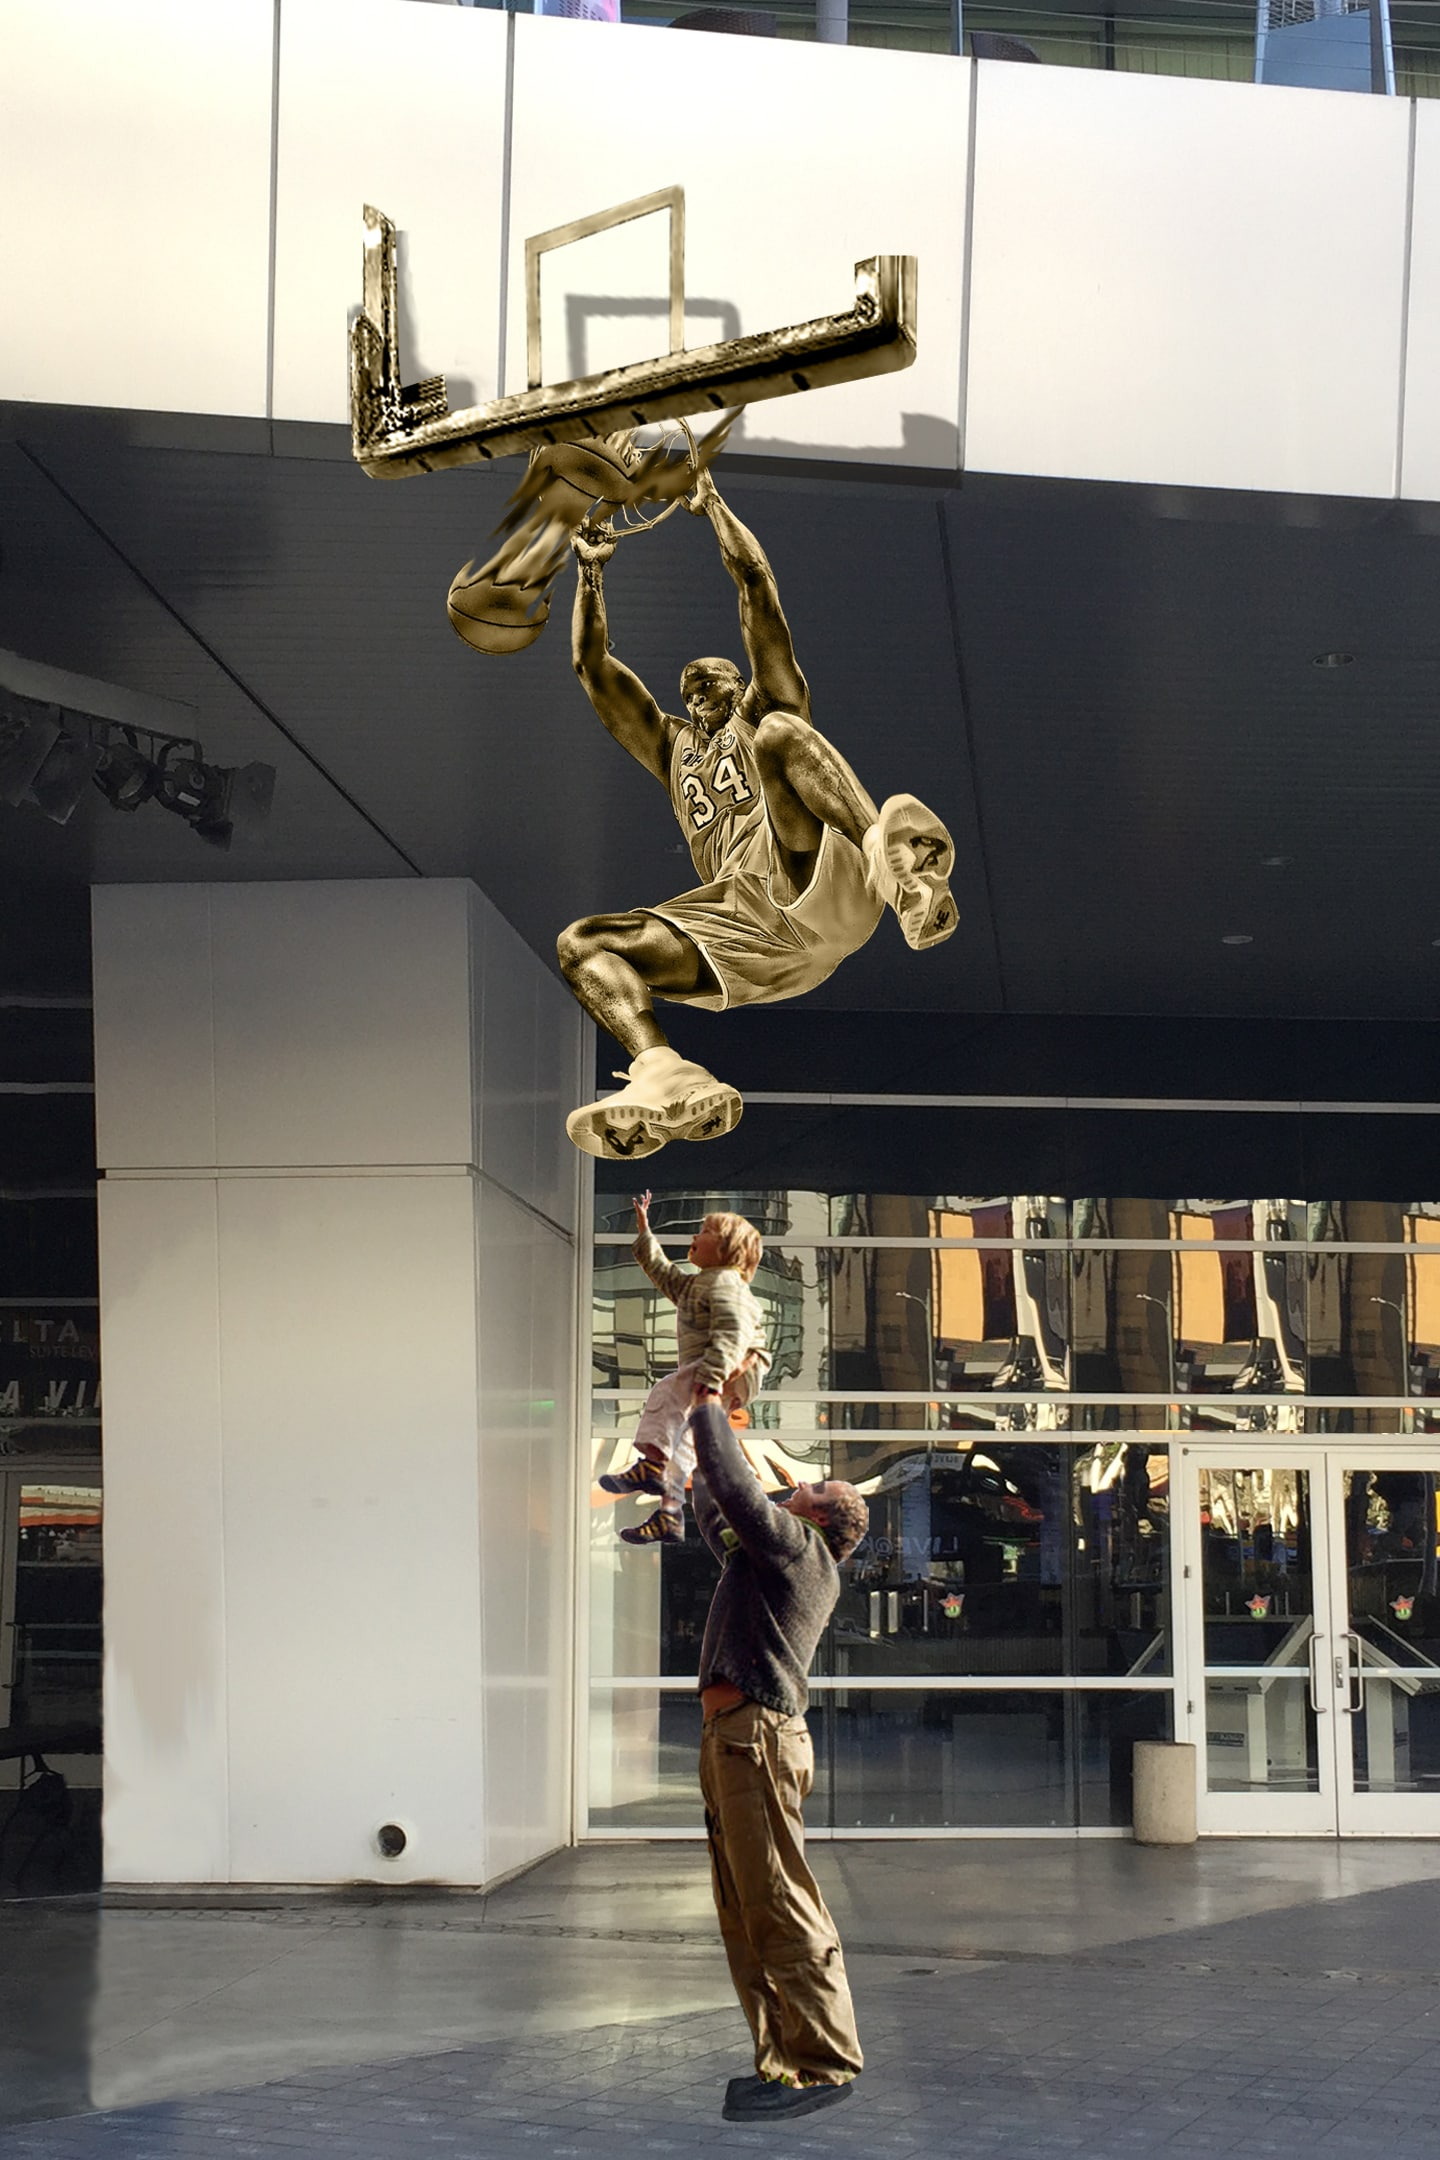 Shaquille O'Neal Statue to be Unveiled At STAPLES Center ... |Shaquille Oneal Statue